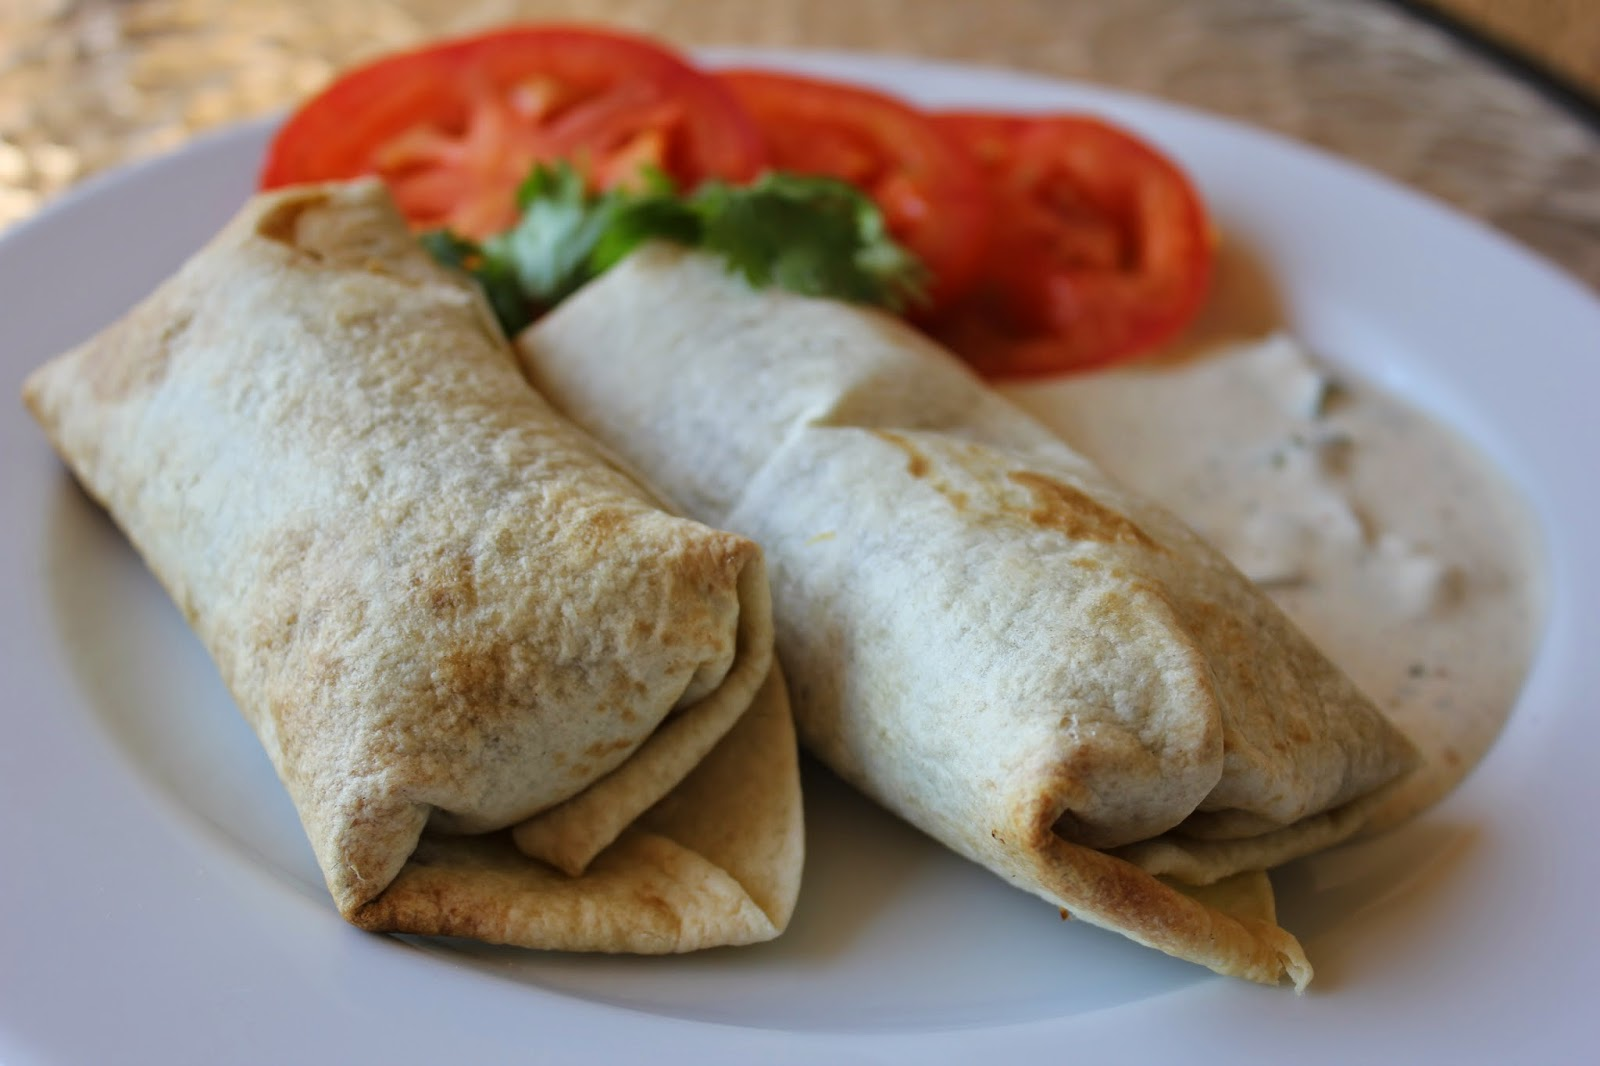 Money Saving Tips, inexpensive vacation ideas, Vacations, Recipe:  Beans, Recipe:  Main Dish, Recipe:  Healthy Recipes, Saving Money, Easy Meal Ideas, Kid Friendly Food, Deals to Meals, Easy Bean and Cheese Burritos,